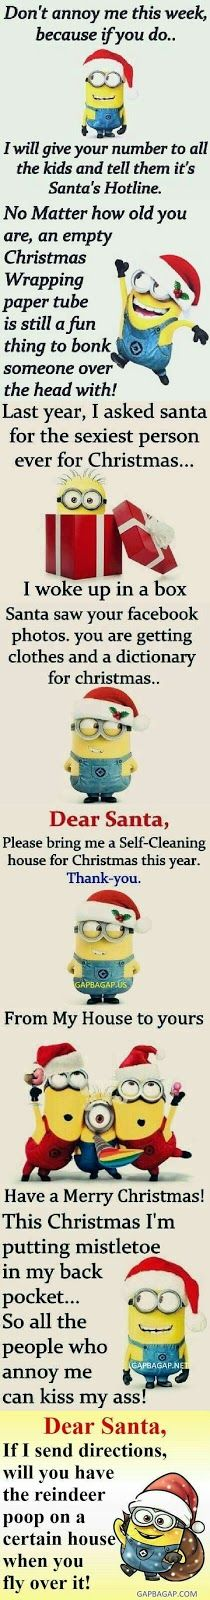 Funny Memes Collection About Christmas By Minions